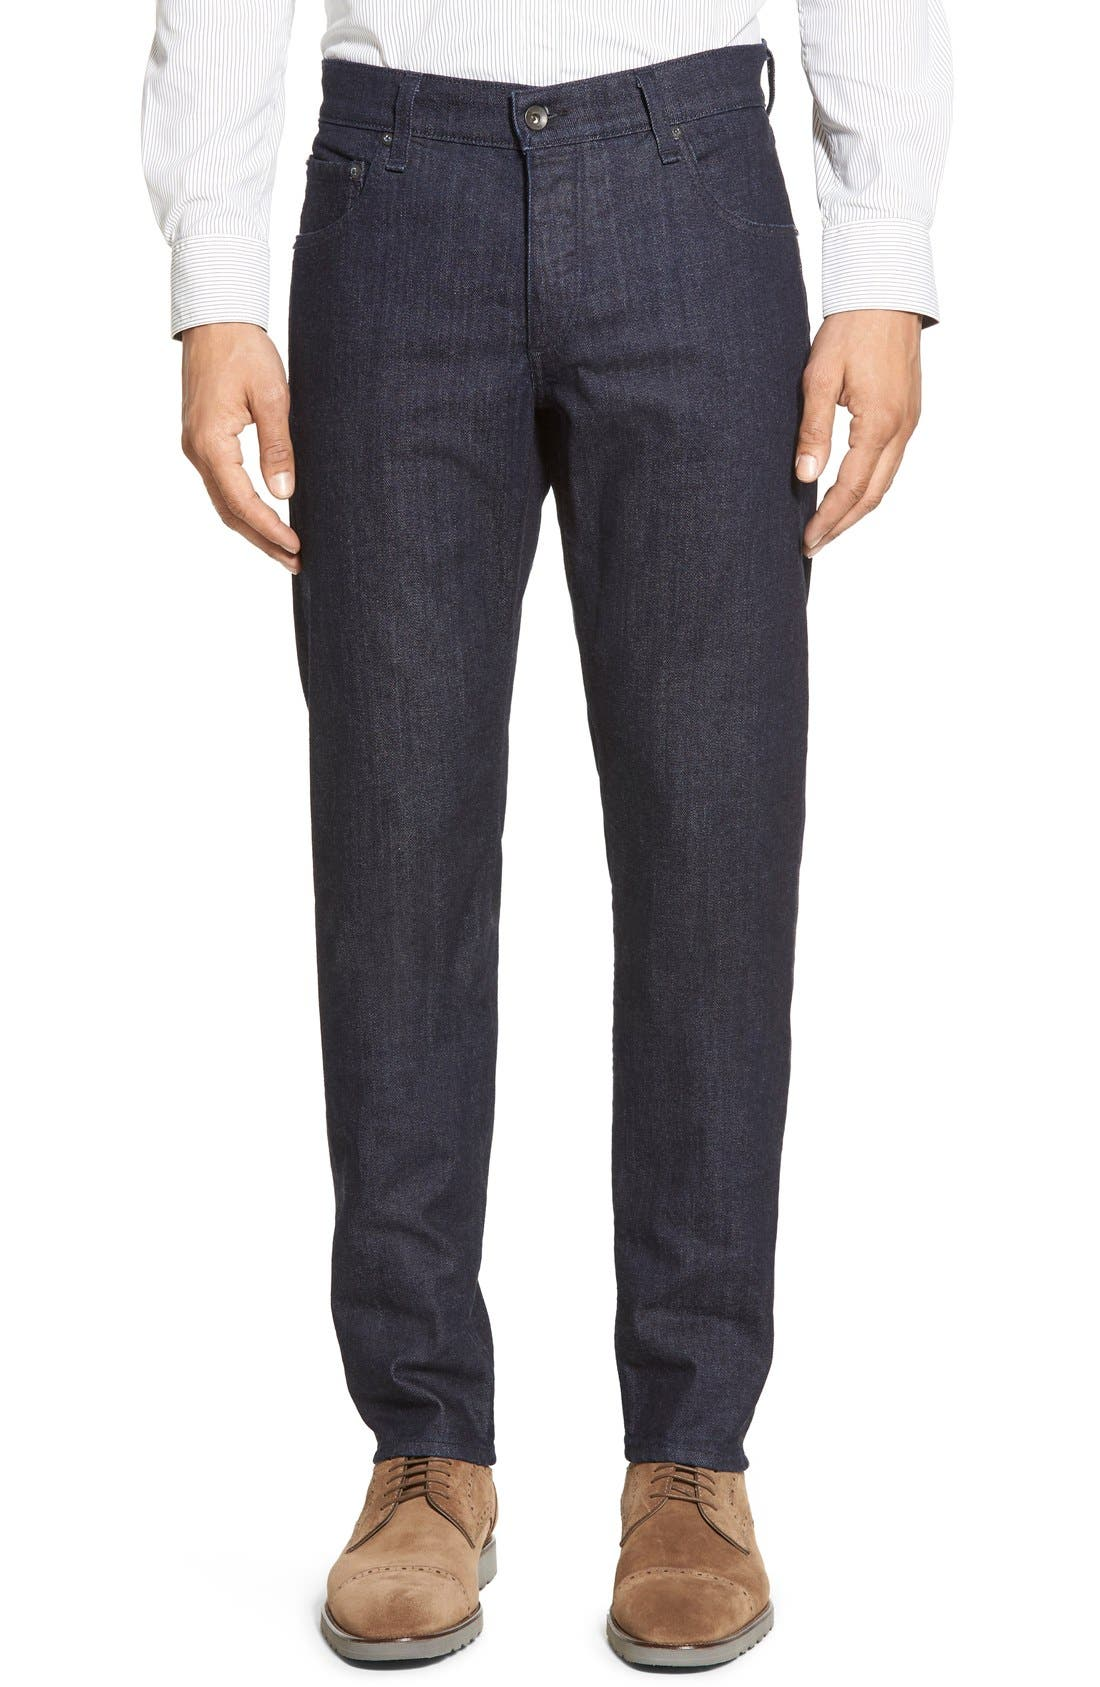 Main Image - rag & bone Standard Issue Fit 2 Slim Fit Jeans (Tonal Rinse)